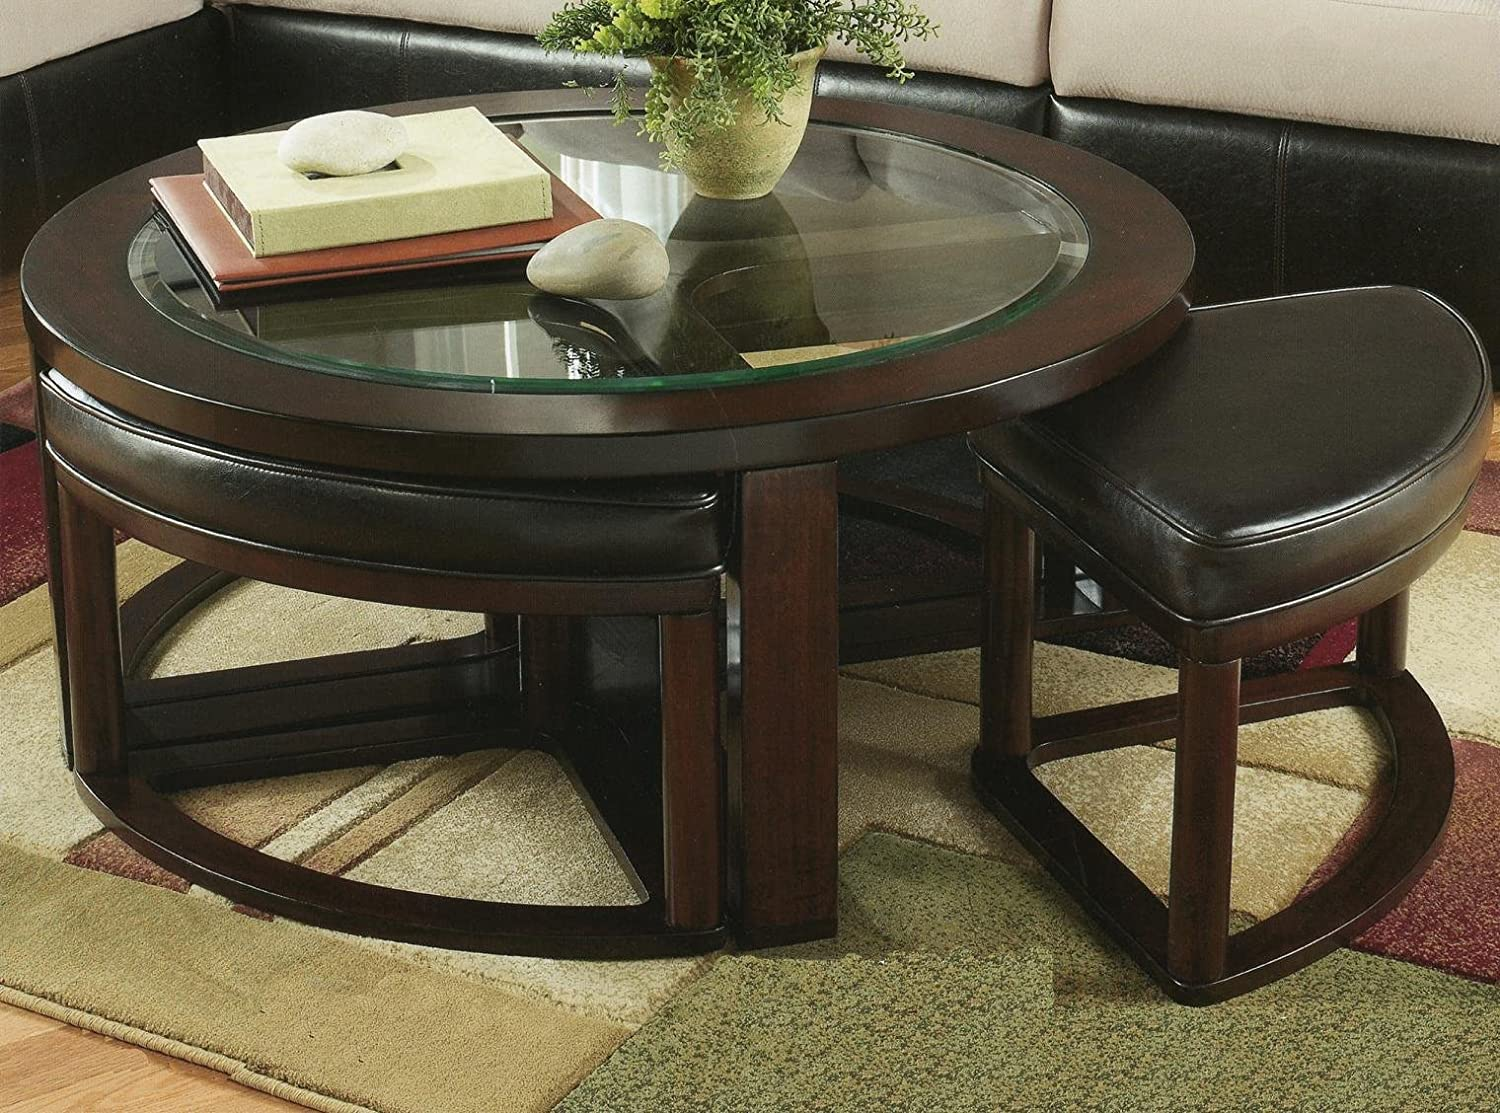 Amazon.com: Roundhill Furniture Cylina Solid Wood Glass Top Round Coffee  Table With 4 Stools: Kitchen U0026 Dining